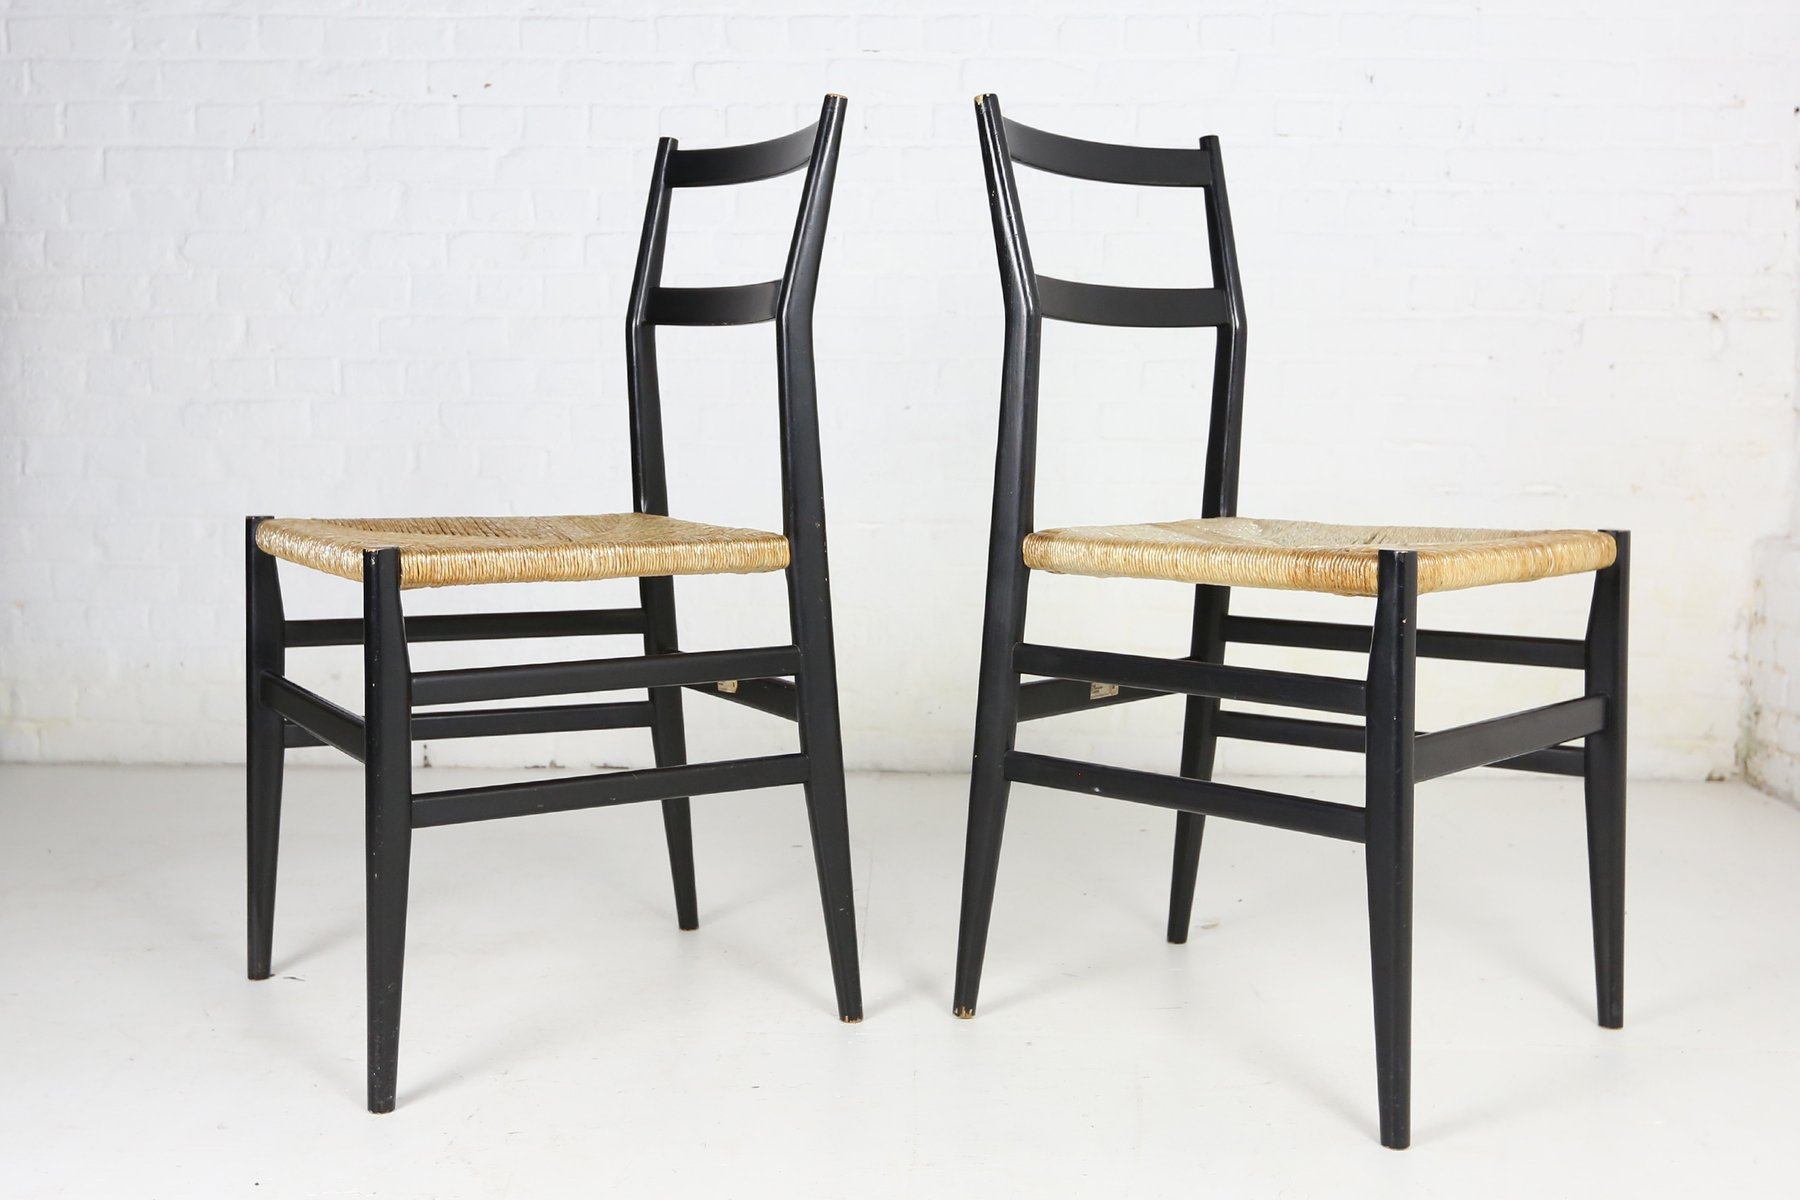 Italian Dining Chairs Italian Dining Chairs By Gio Ponti For Cassina 1960s Set Of 6